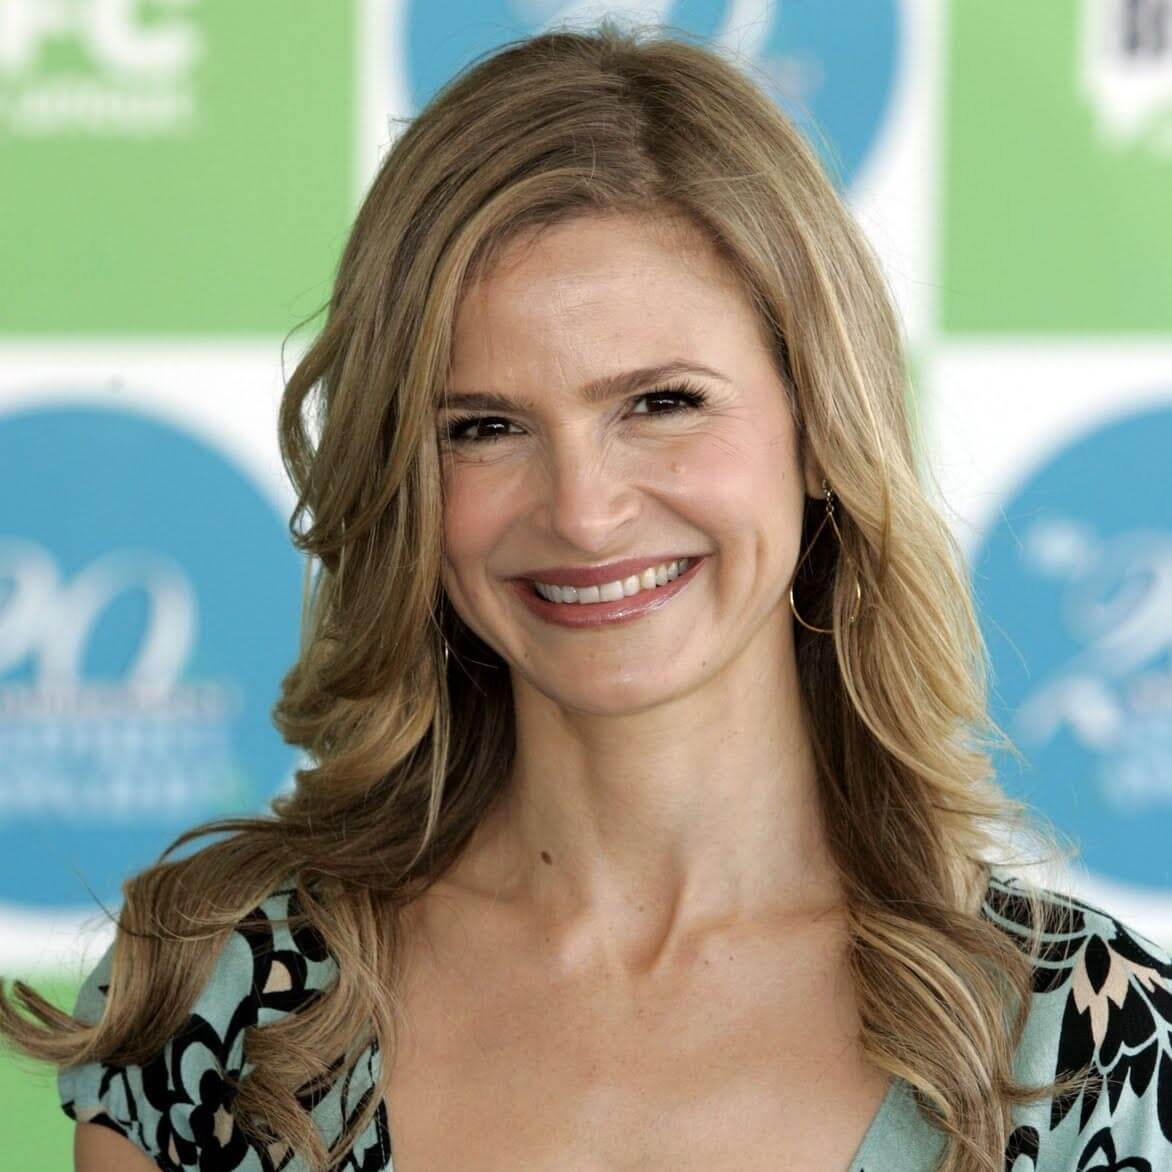 jewish singles in minturn Kyra sedgwick personal details: date of birth: 19 august 1965 birth place: new york city, new york, usa birth name: kyra minturn sedgwick nickname: kiko.